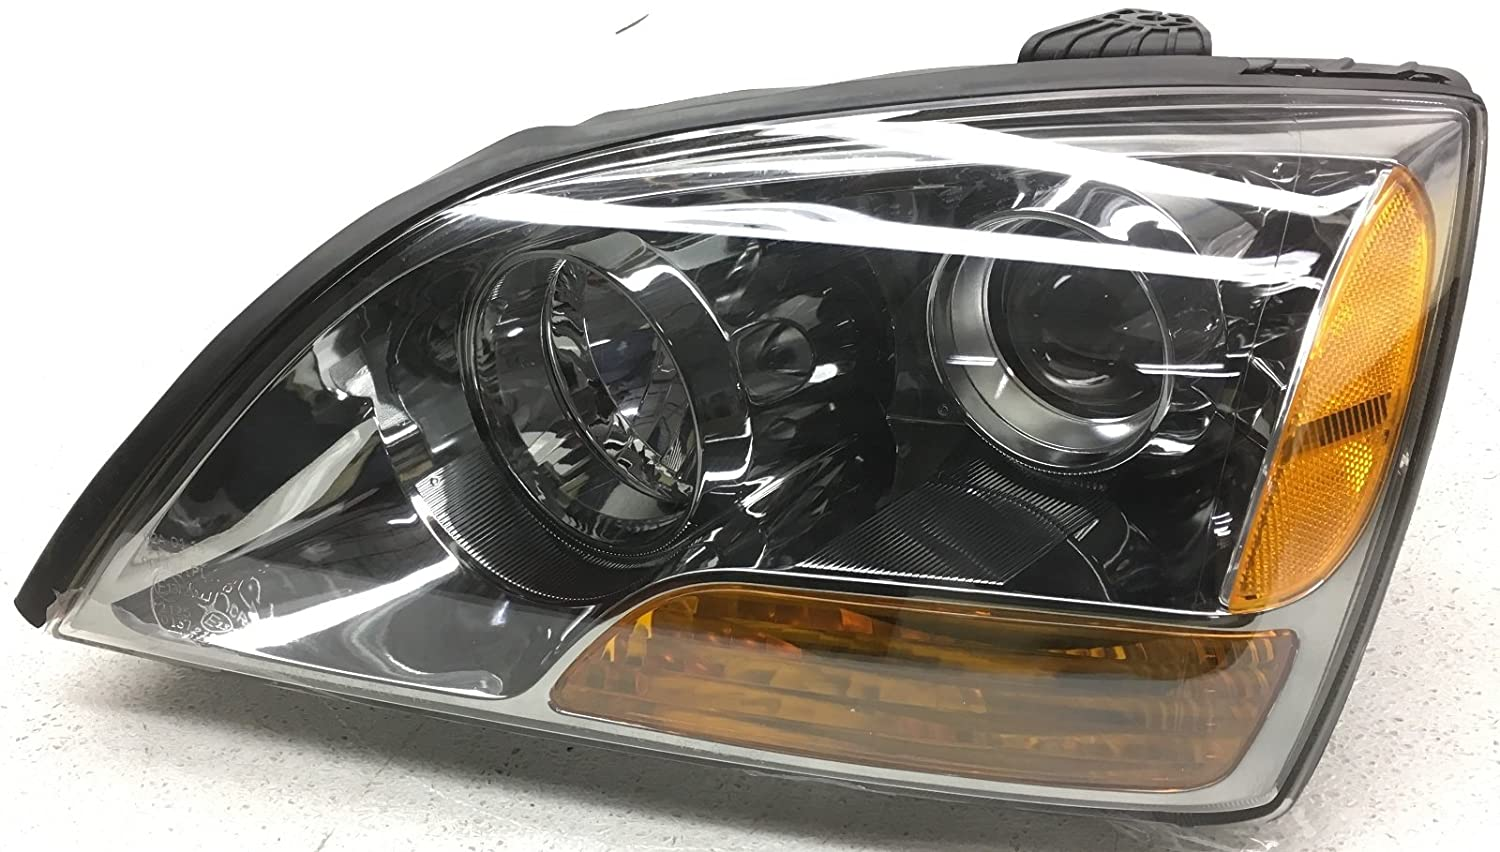 Genuine Kia Sorento Driver Side Headlight Assembly Composite 92101-3E540 Partslink Number KI2502126